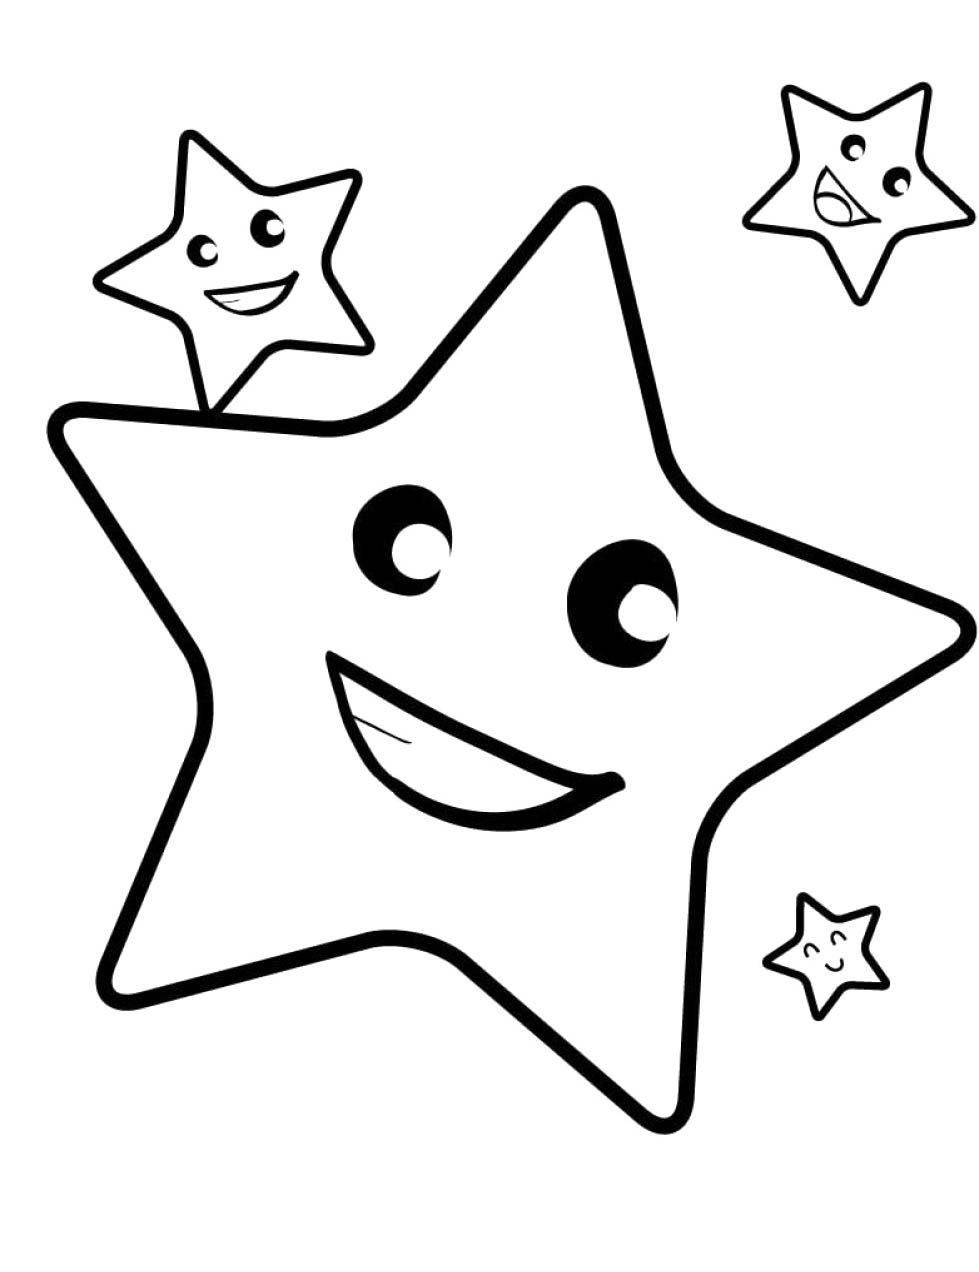 Exceptionnel Star Coloring Page   Google Search